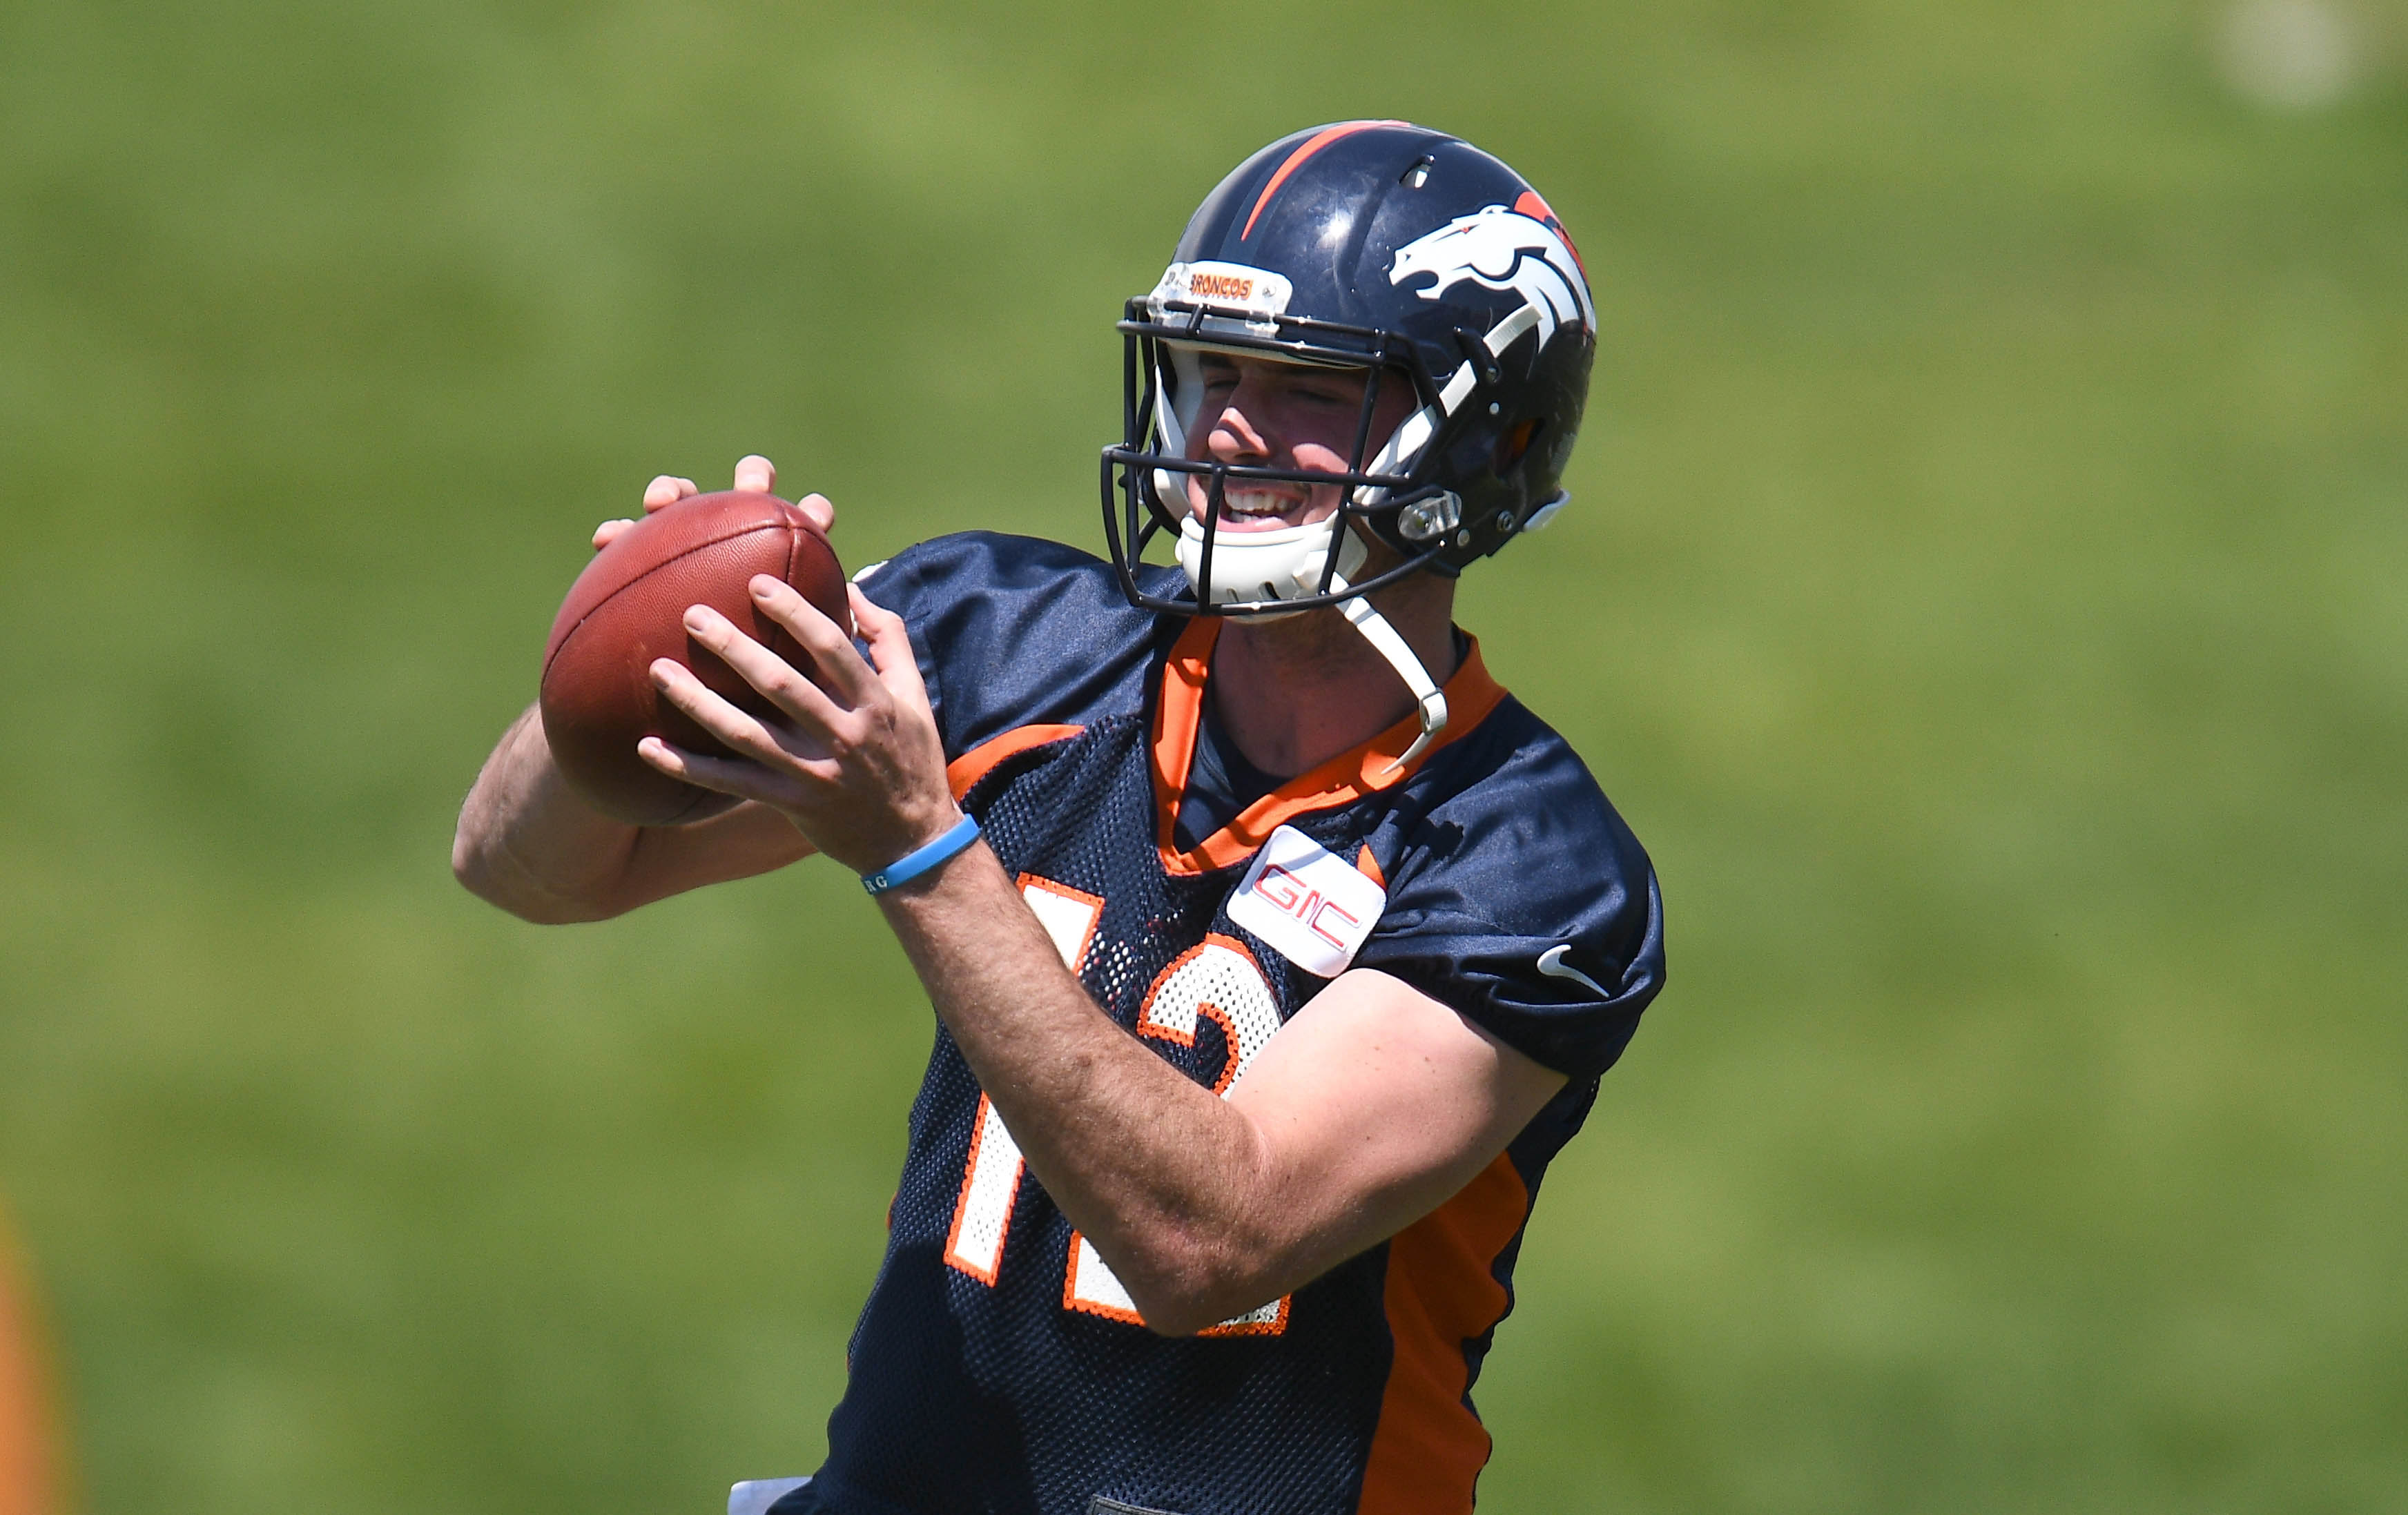 Denver Broncos QB competition: Paxton Lynch vs. Trevor Siemian